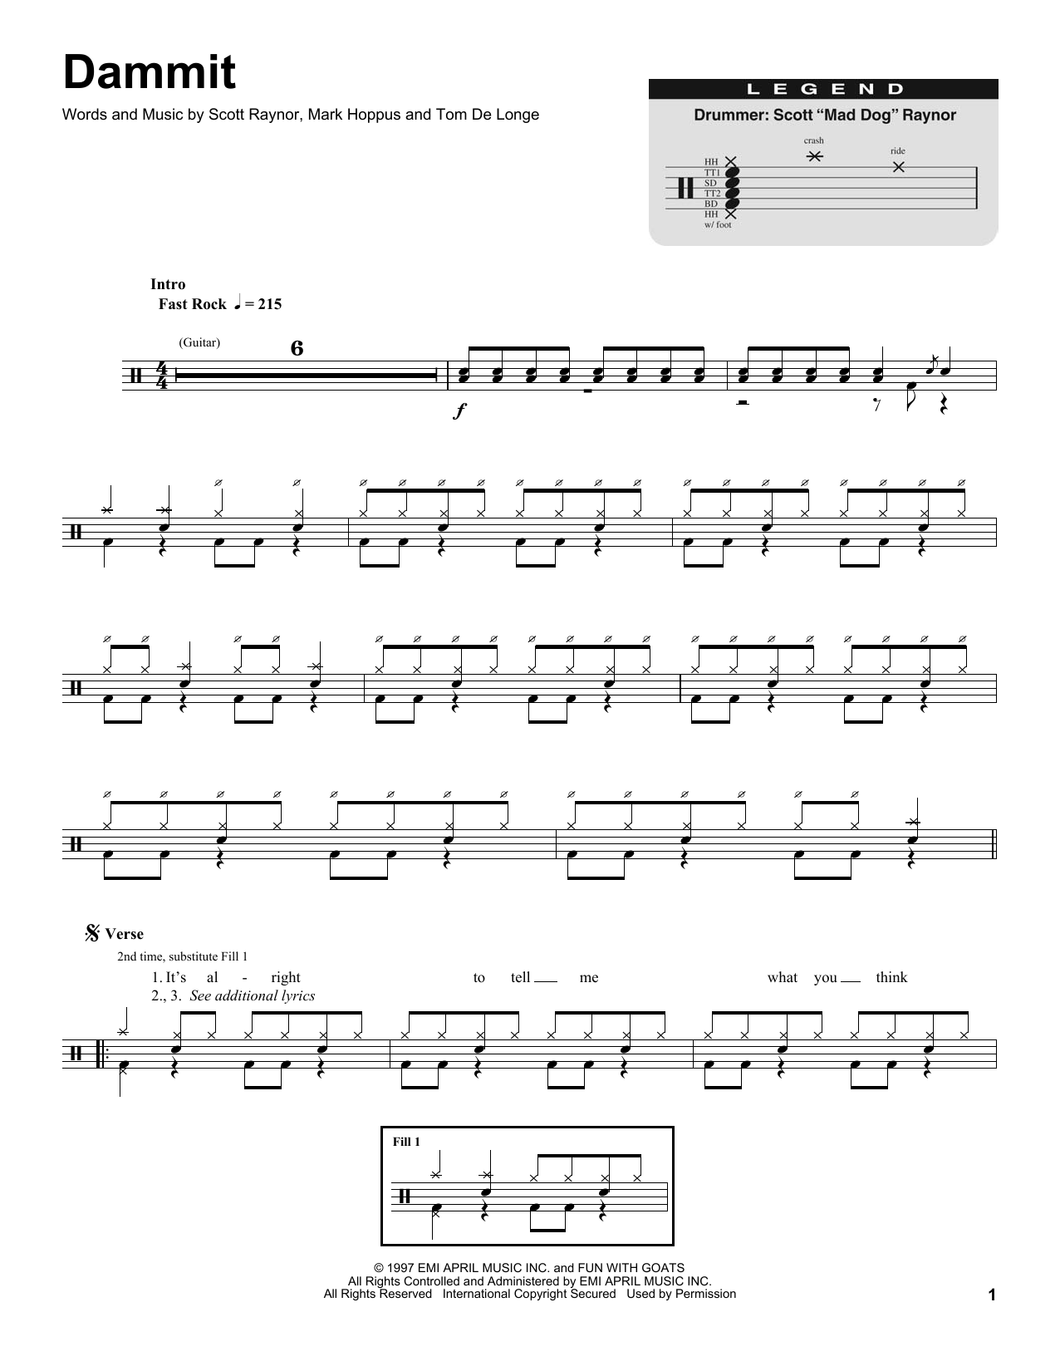 Dammit - blink-182 - Full Drum Transcription / Drum Sheet Music - SheetMusicDirect DT174827